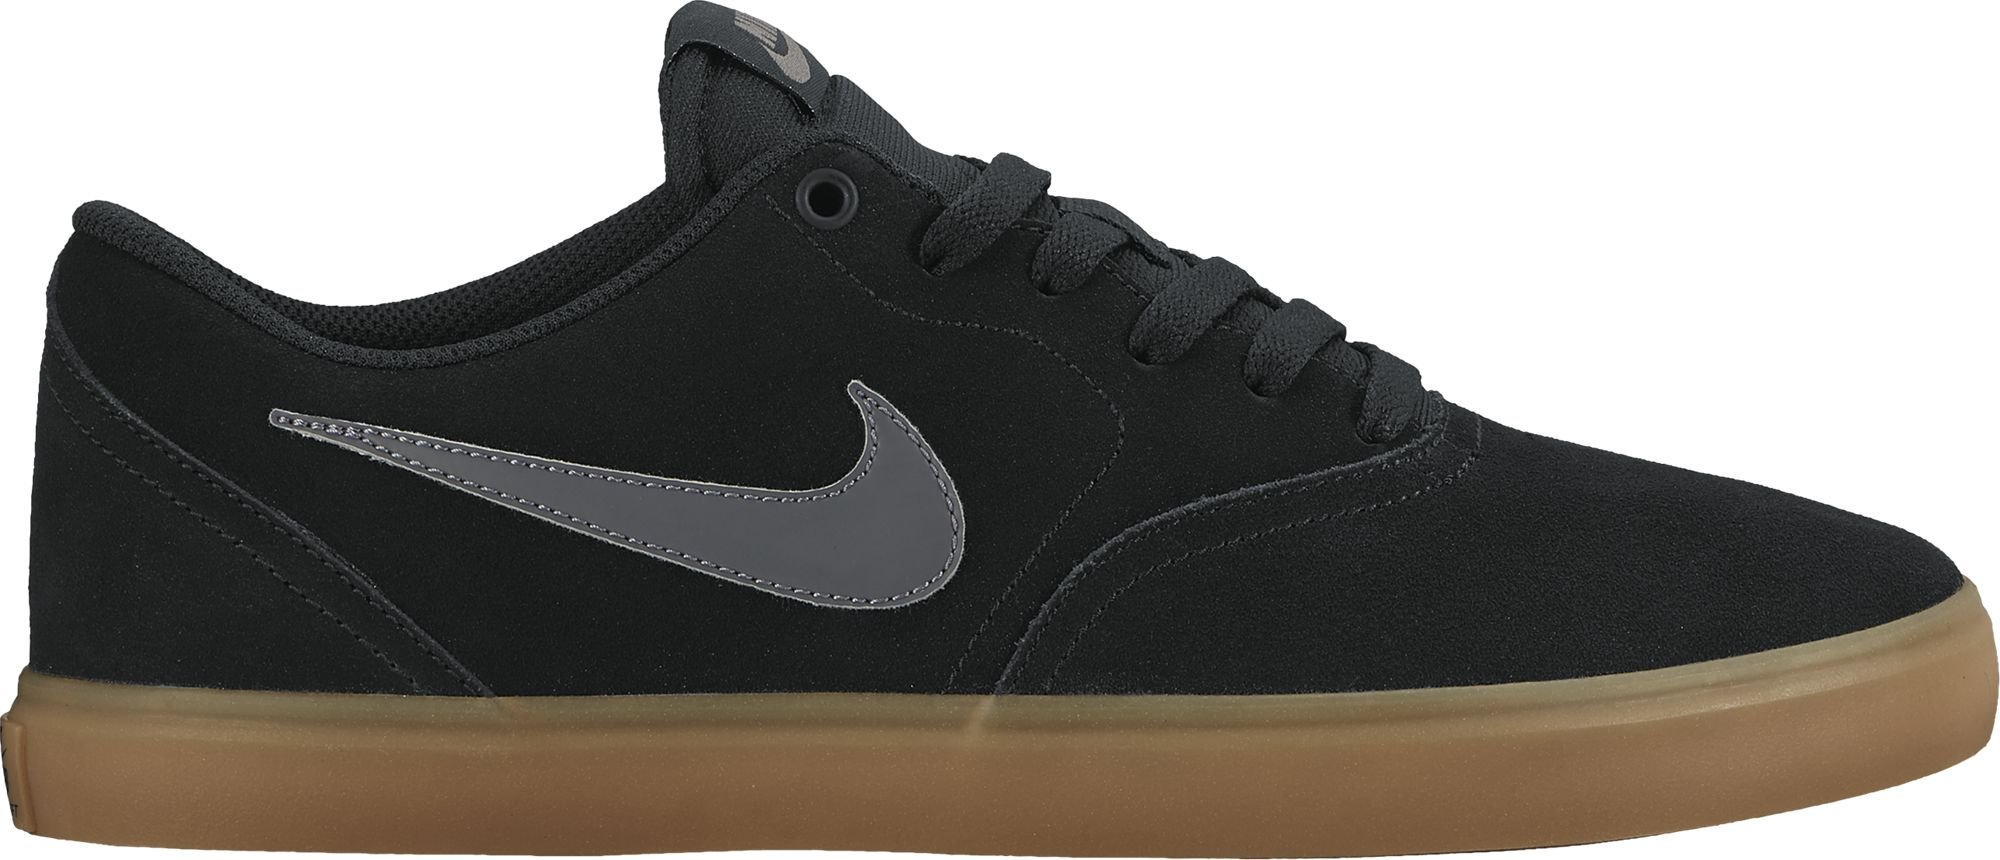 NIKE Men's SB Check Solar Skate Shoe, Black Anthracite Gum Brown 7.5